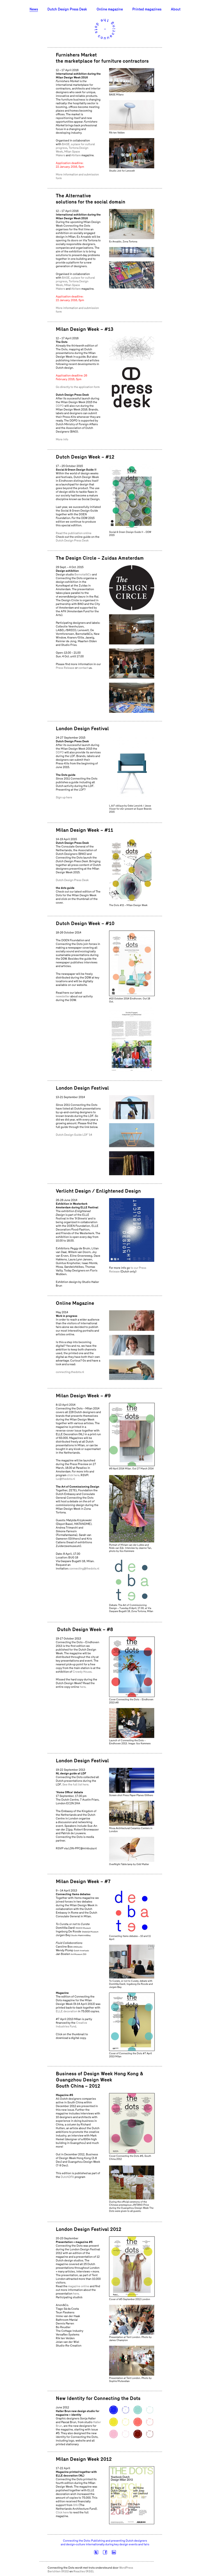 Thedots Competitors Revenue And Employees Owler Company Profile Wiring A House 4th Edition Completely Revised Updated